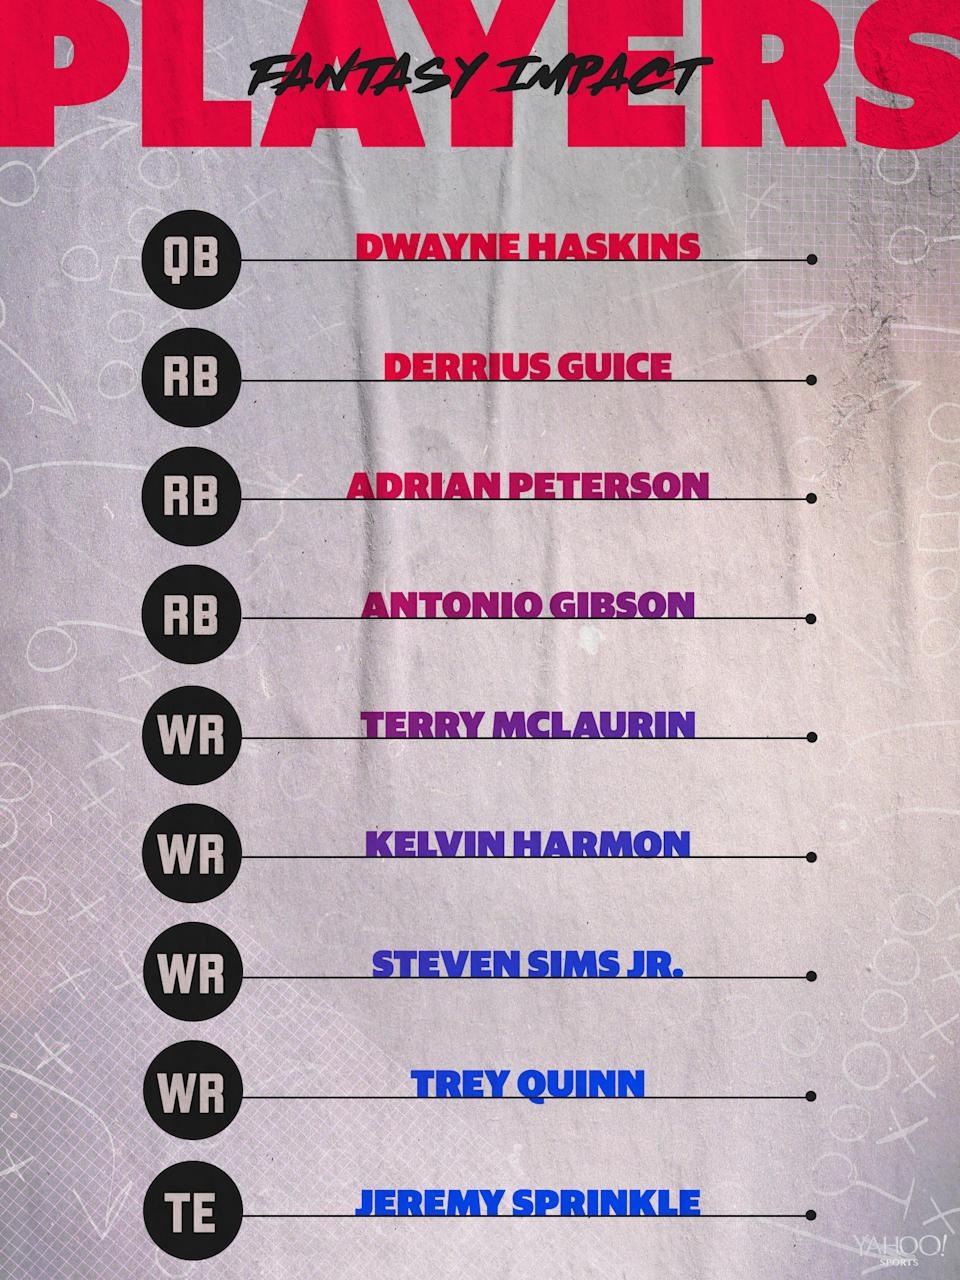 Washington Redskins projected 2020 lineup